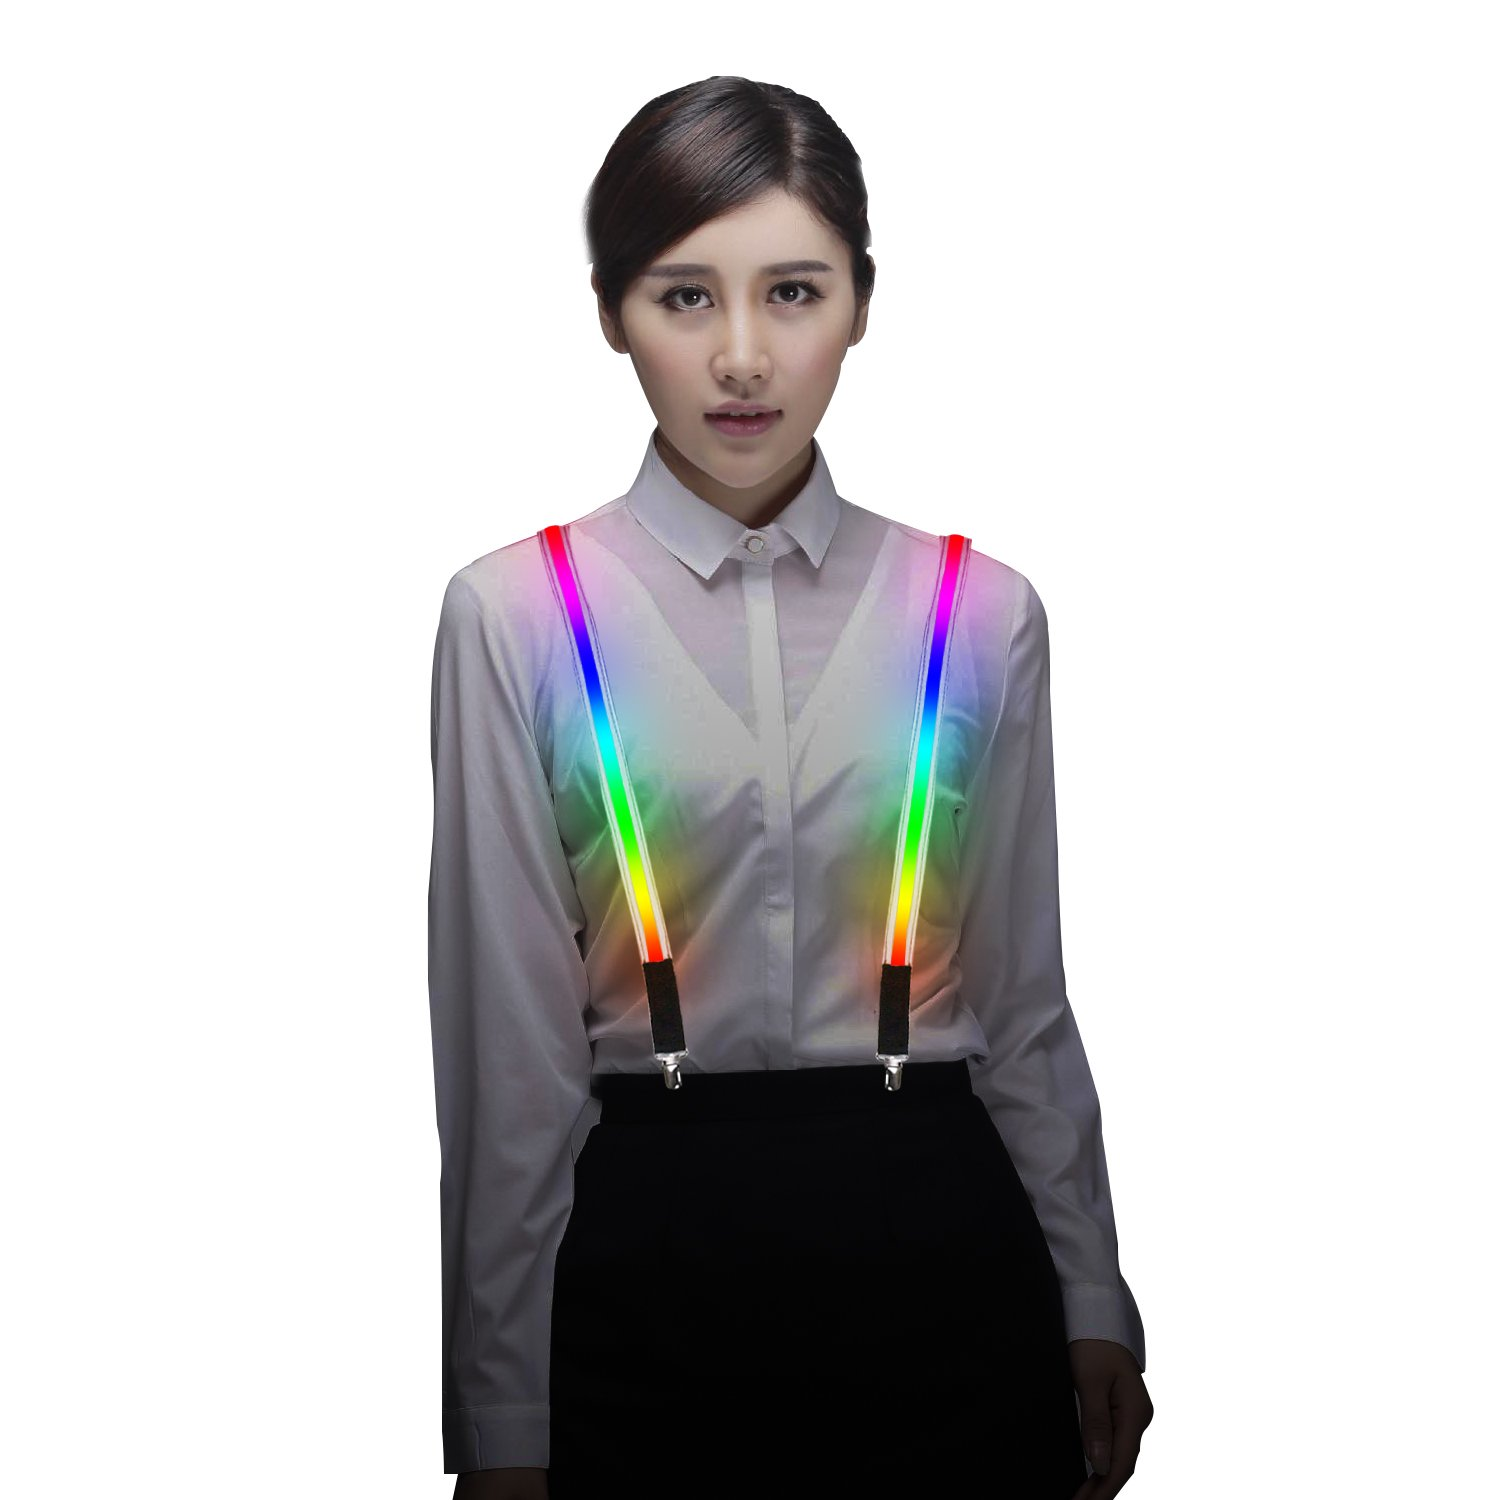 Light Up LED Suspenders Adjustable One-size for Party Concert Men&Women - Rainbow